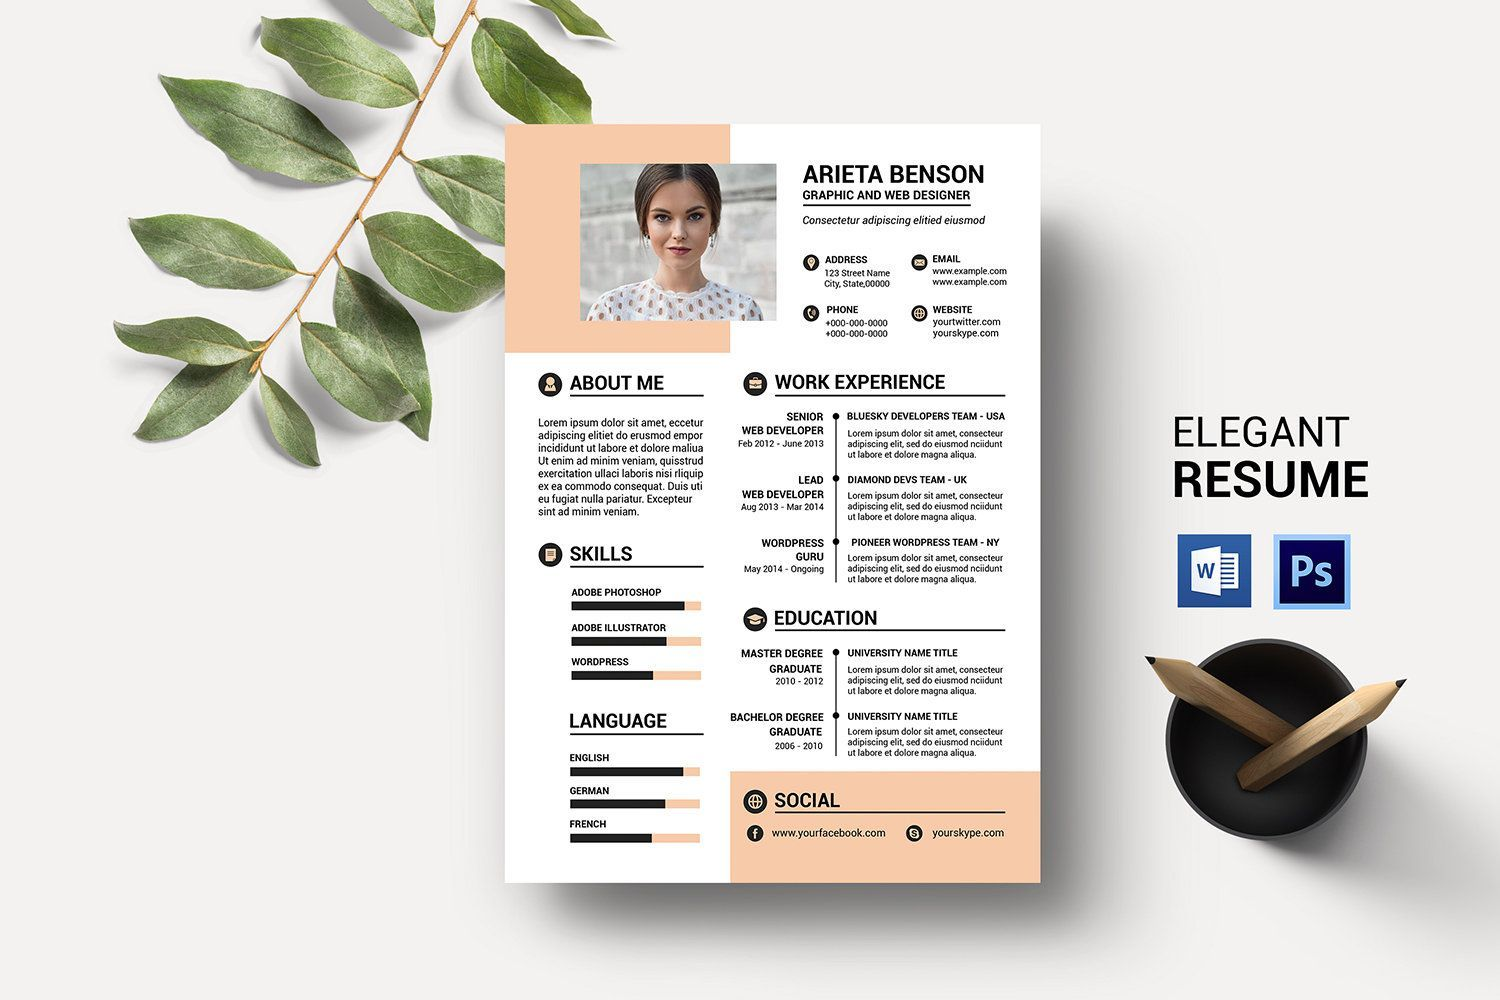 13 Free Resume examples sample tips in 2020 Clean resume